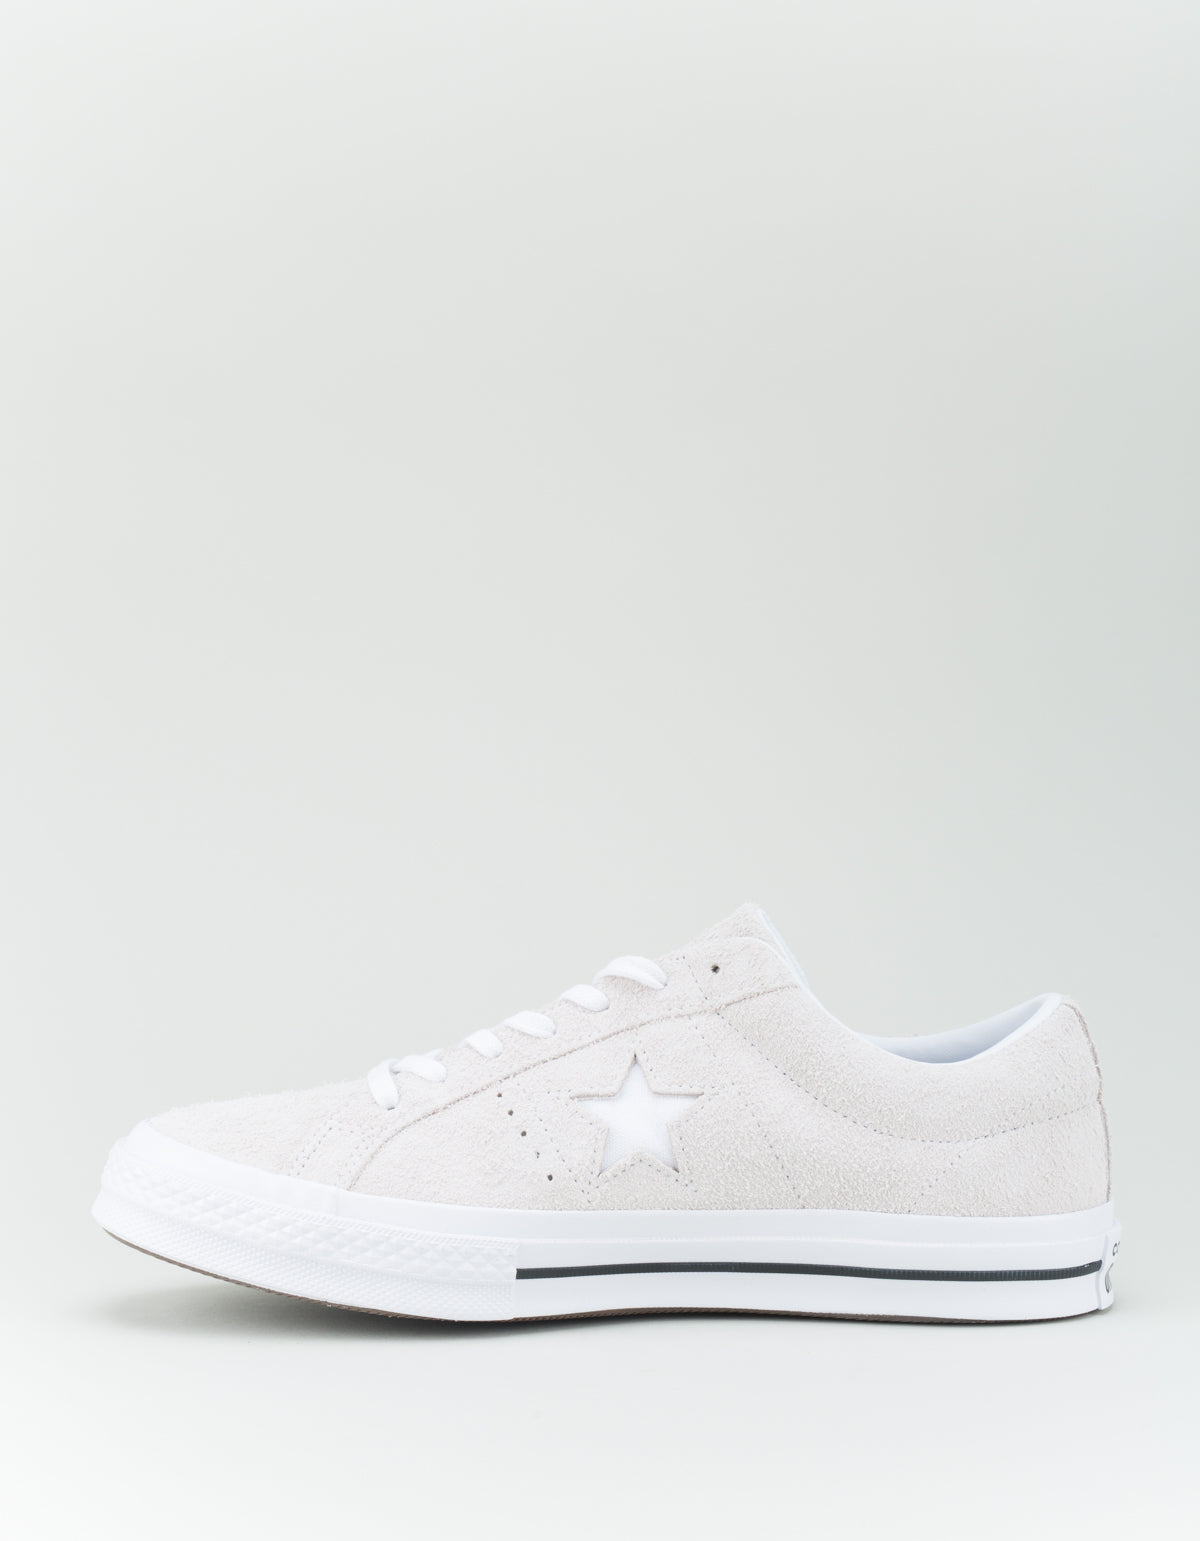 Converse Men's One Star Vintage Suede Low Top White Monochrome